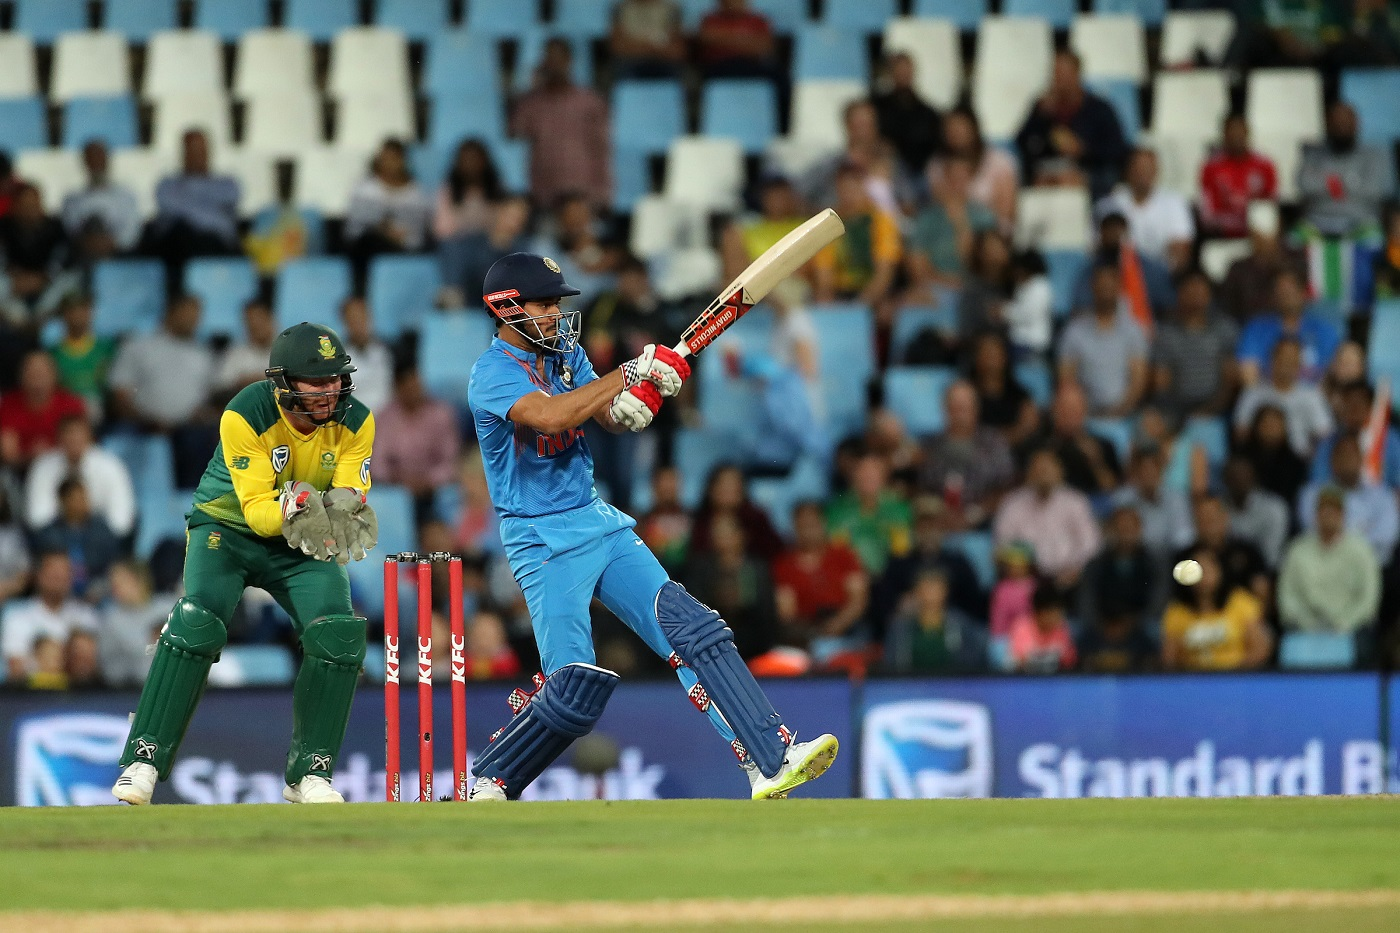 SA vs IND 2018: I Was Waiting To Play At Centurion, Says Manish Pandey